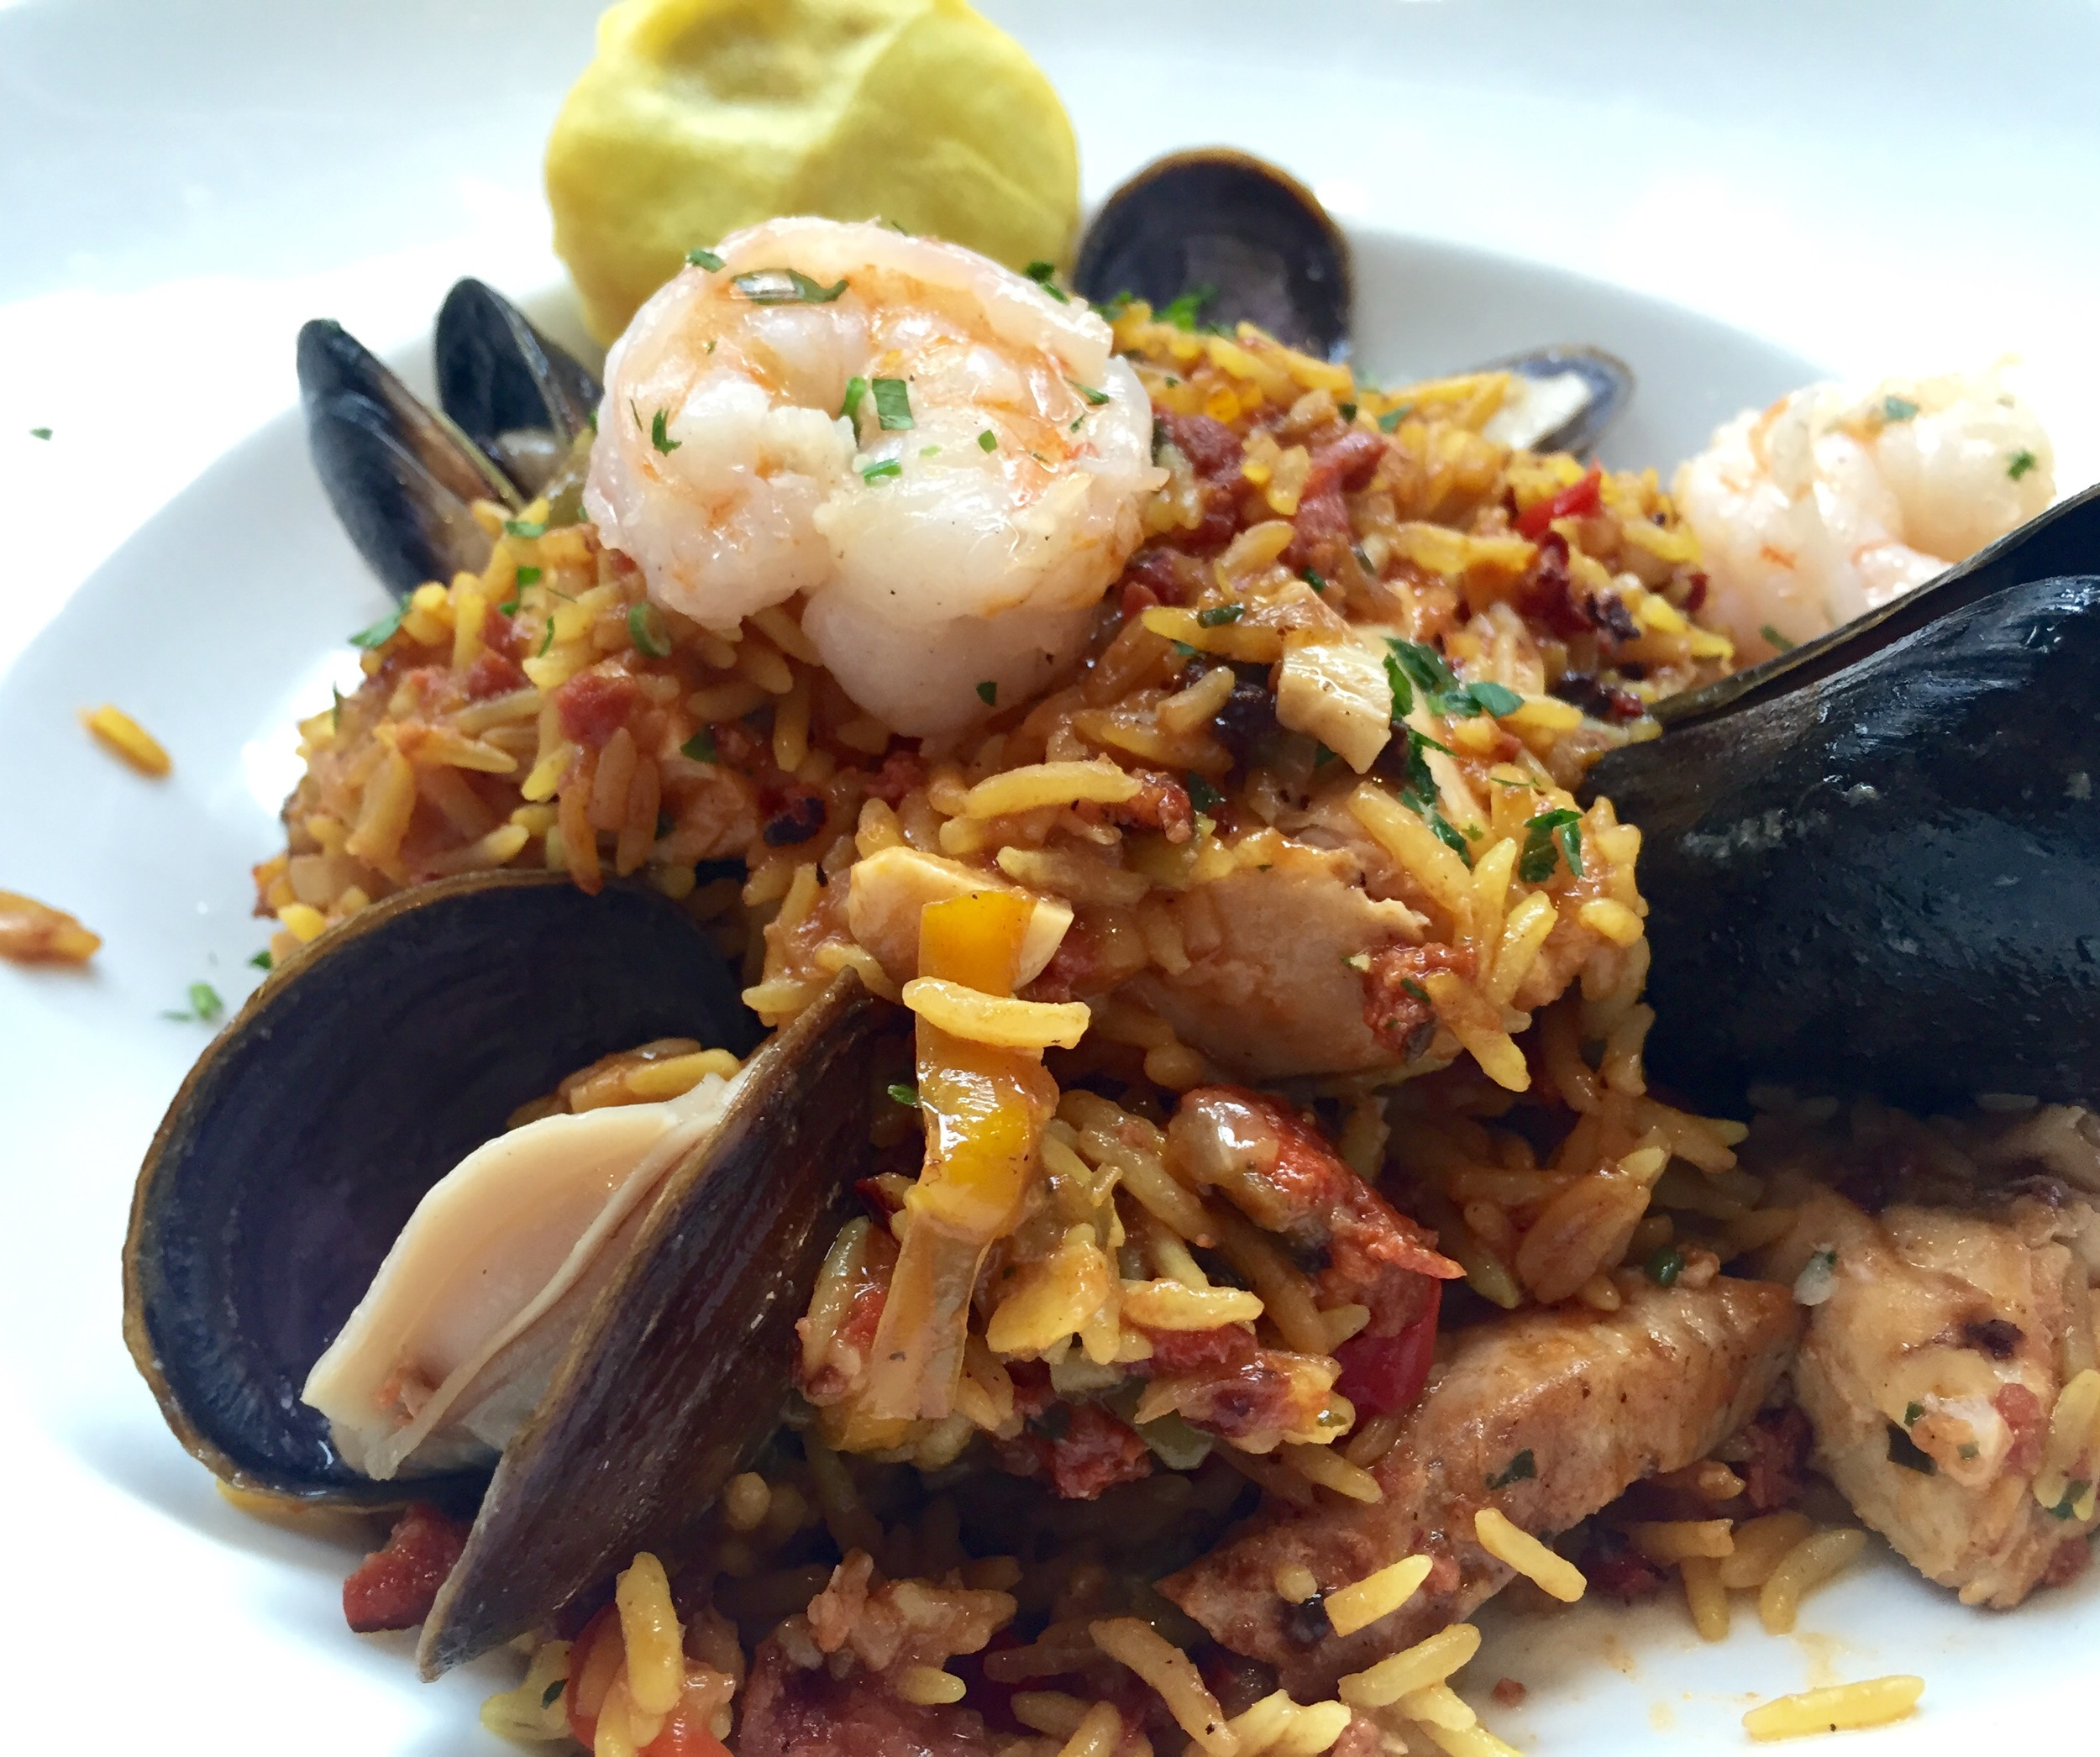 Paella is a hard dish to get right but Ironside Fish and Oyster does it very, very well.